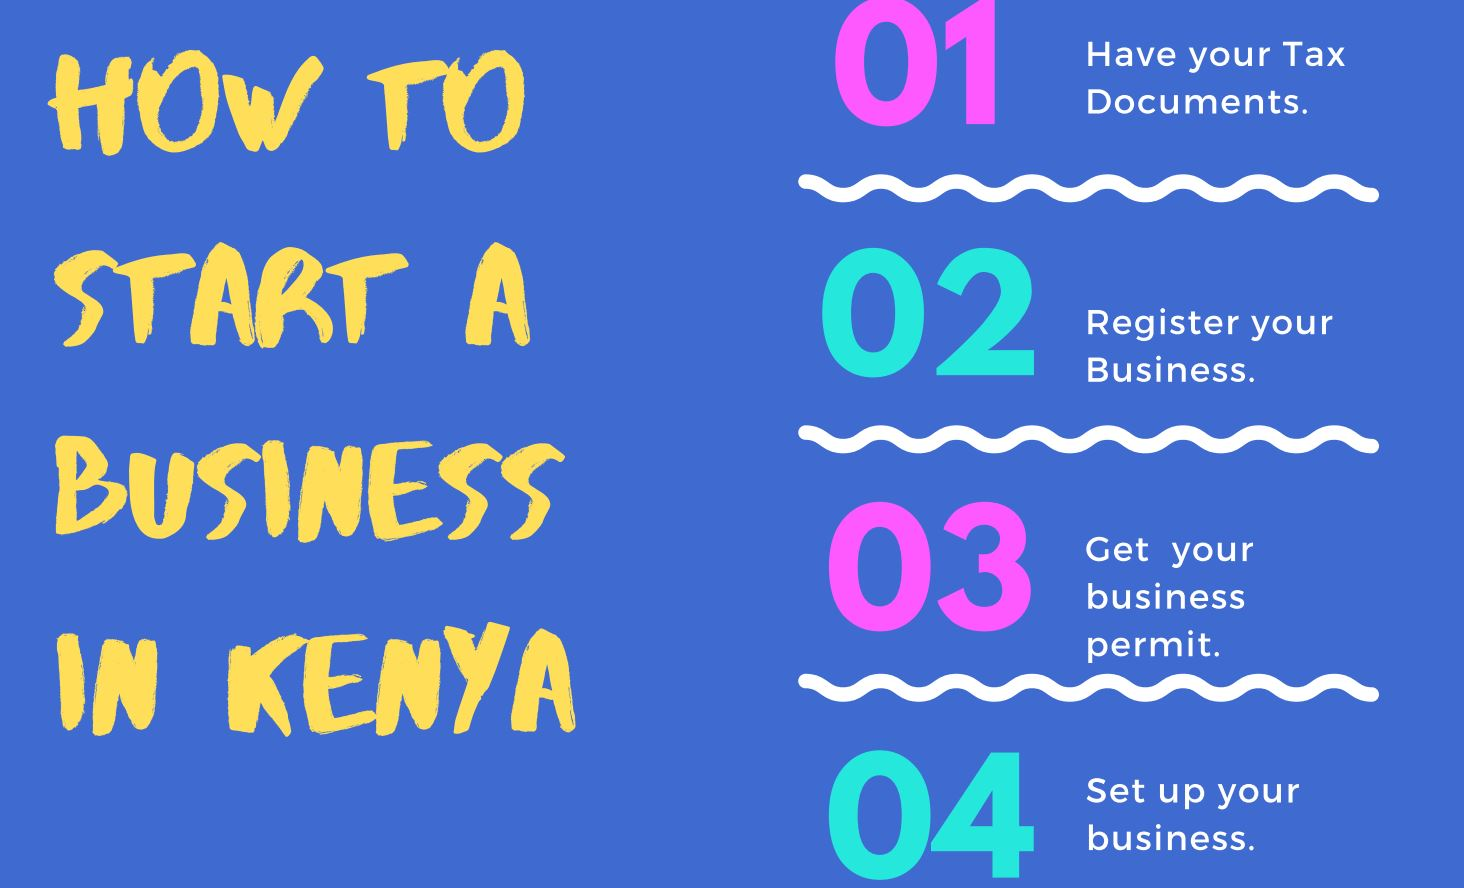 Some of the Legal Requirements of Starting a Business in Kenya and Licenses required